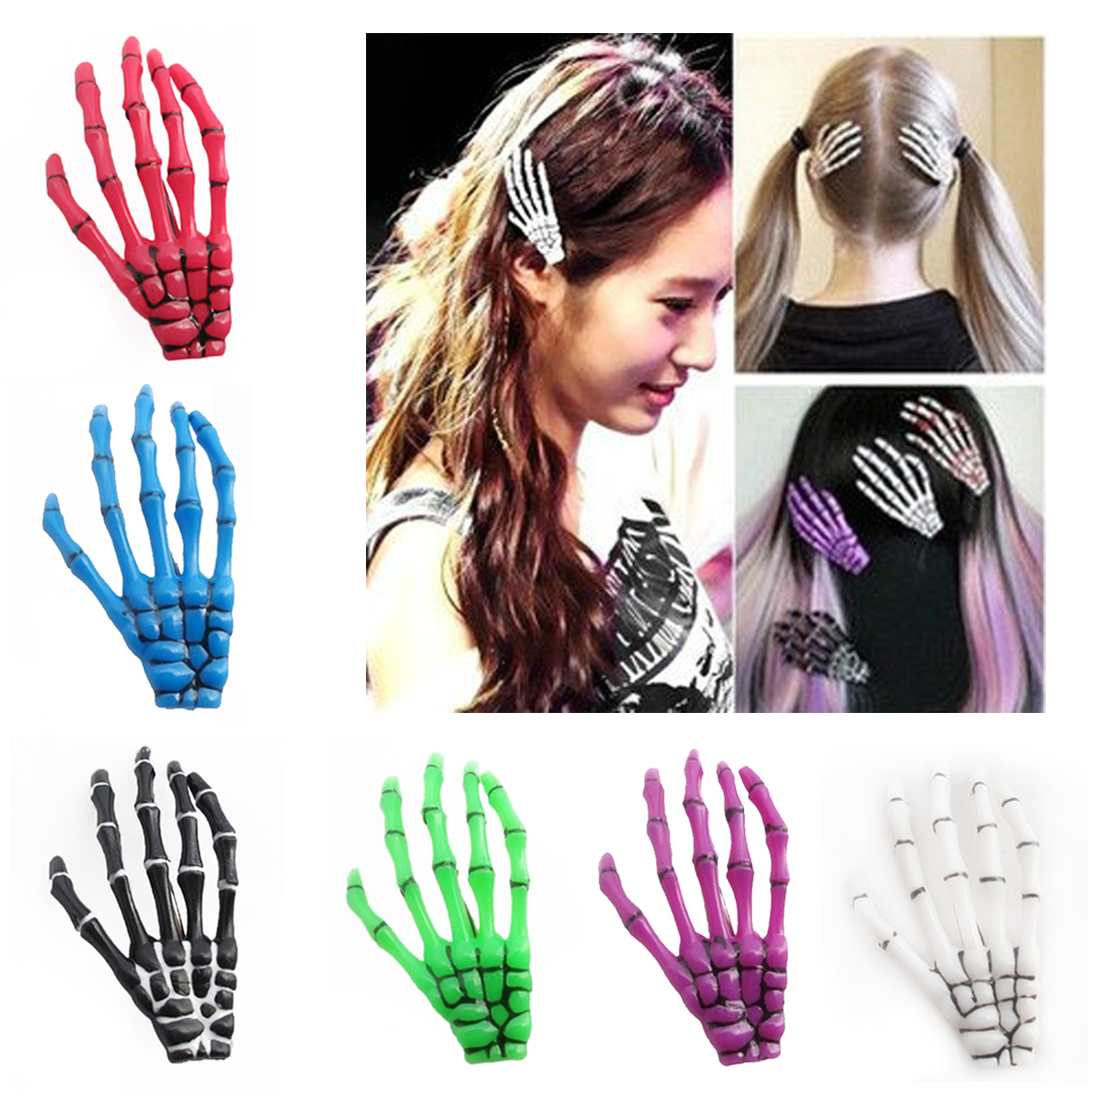 Design Gift Zombie Ghost Skeleton Claw Hairpin Halloween Hair Clips Hand Bone